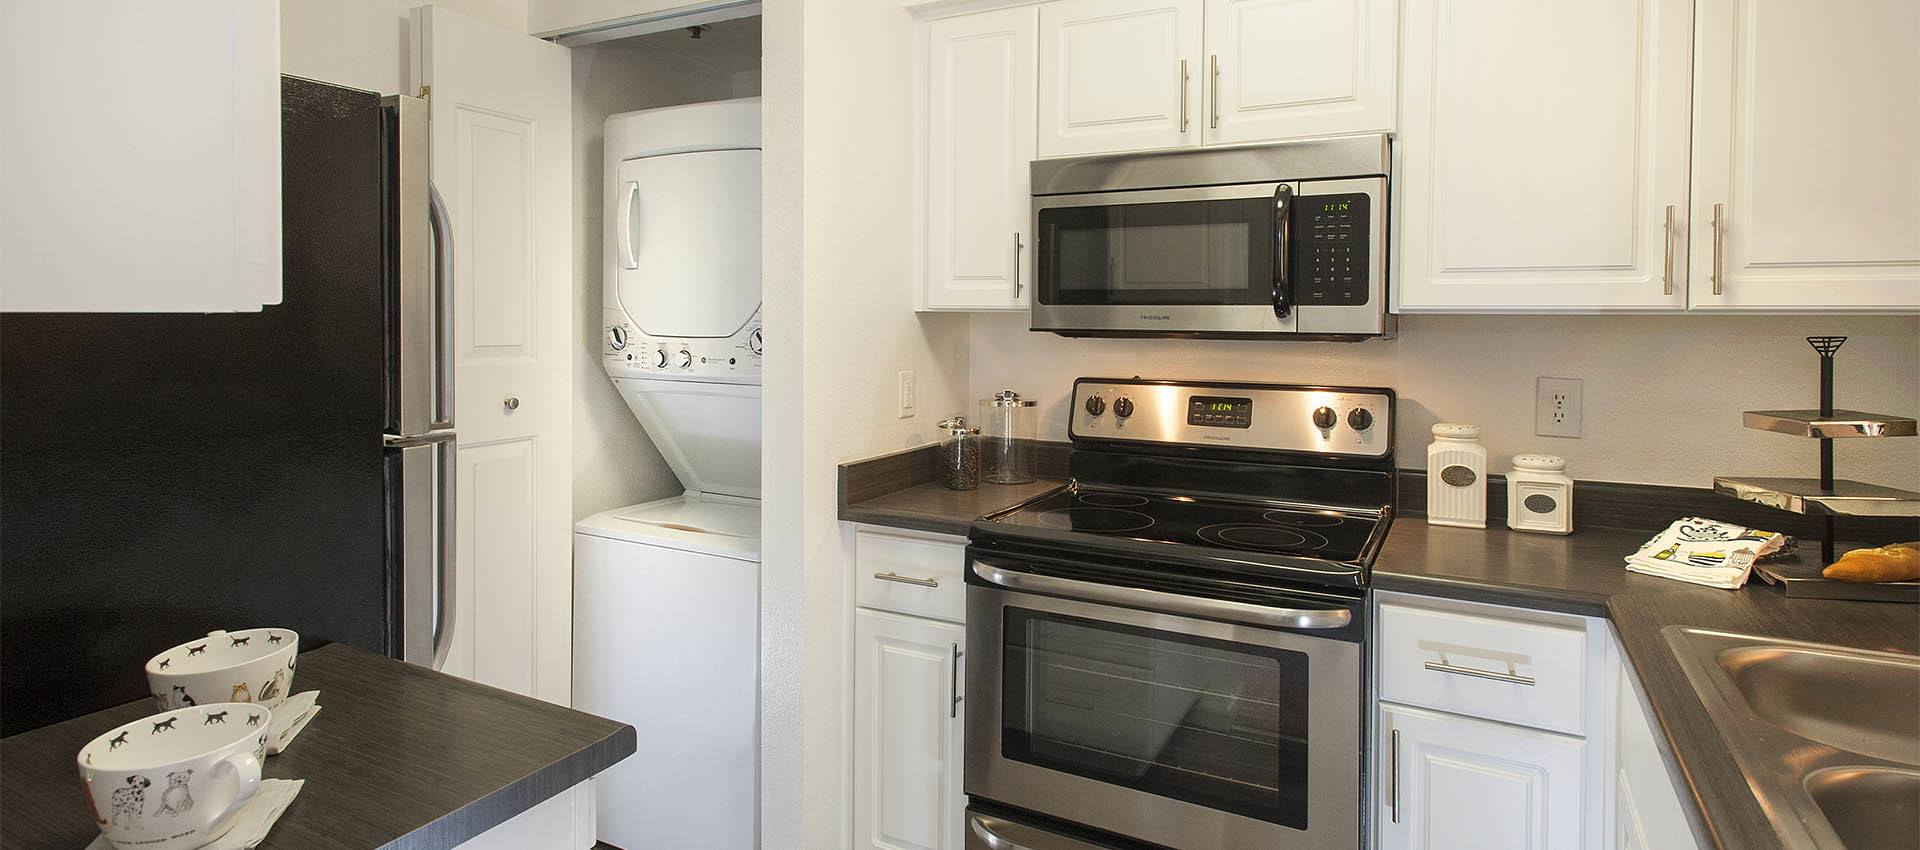 Luxury Kitchens at Mill Springs Park Apartment Homes in Livermore